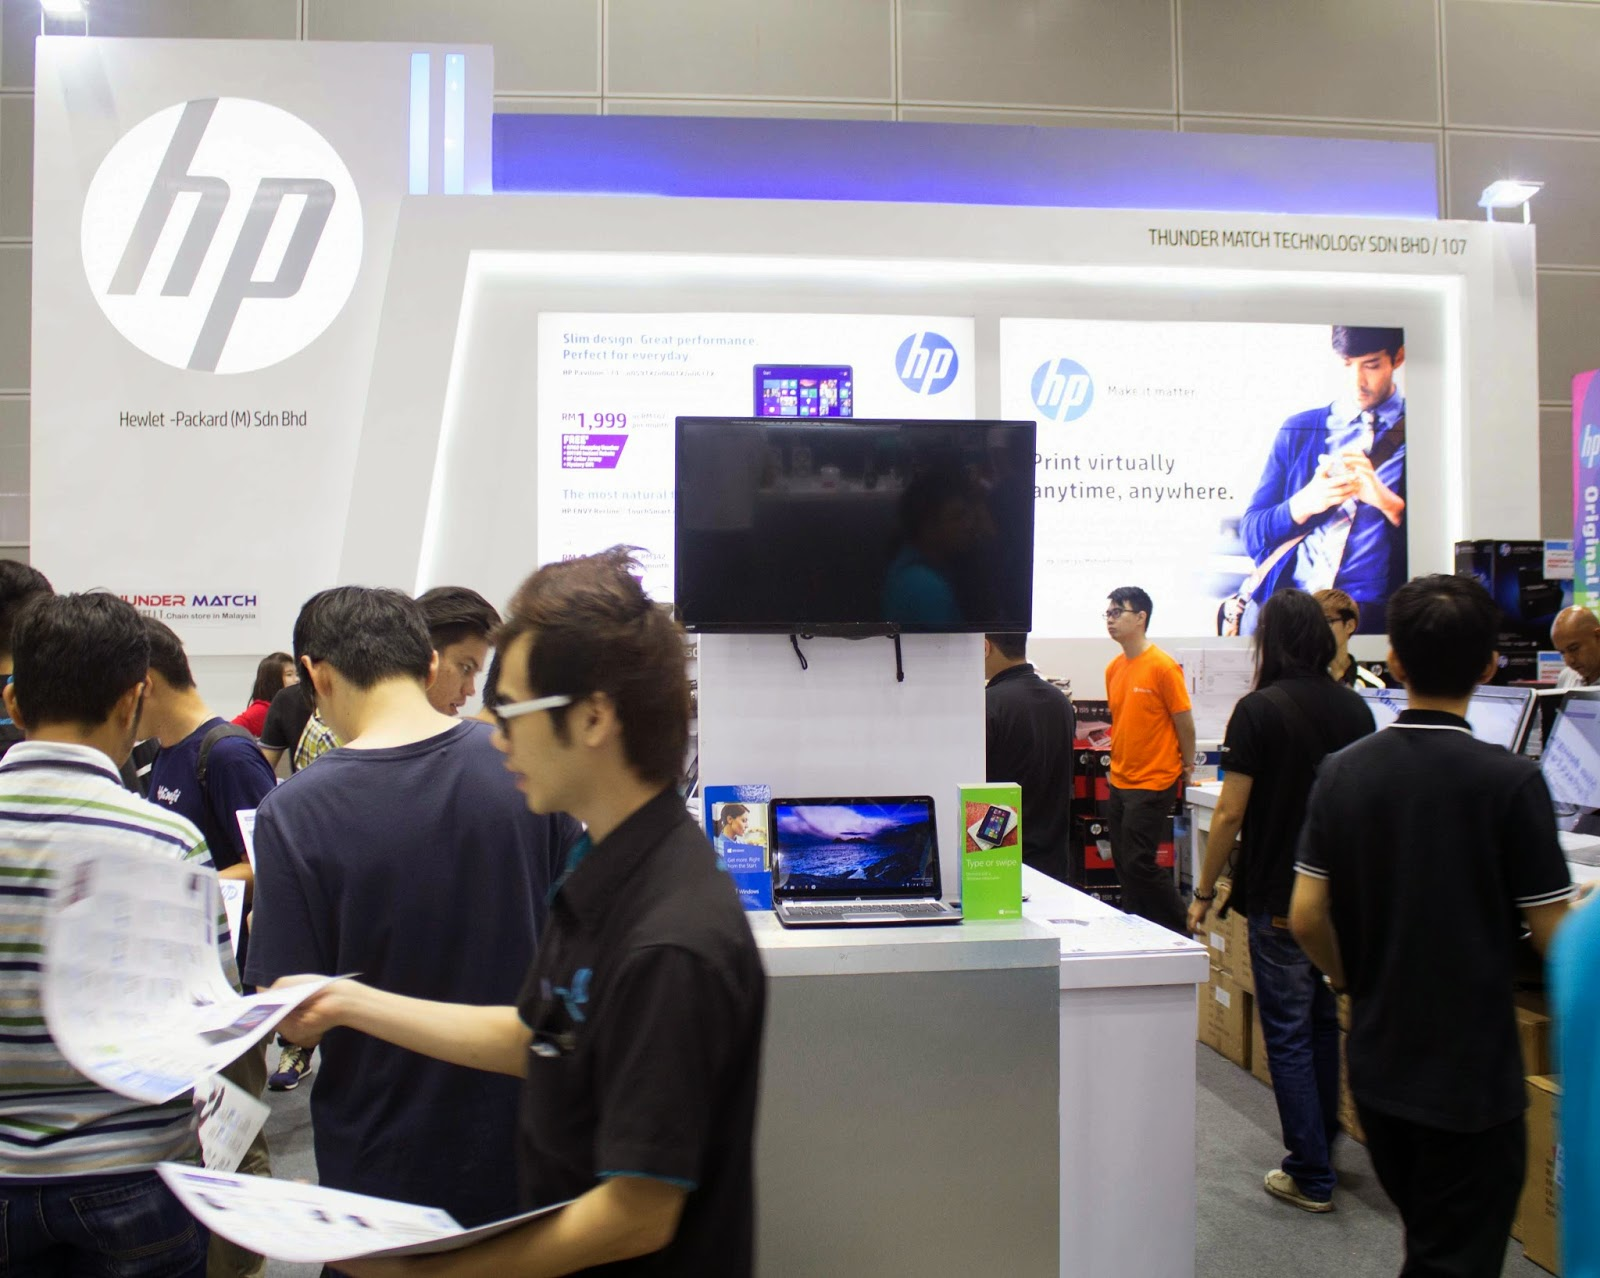 Coverage of PIKOM PC Fair 2014 @ Kuala Lumpur Convention Center 288